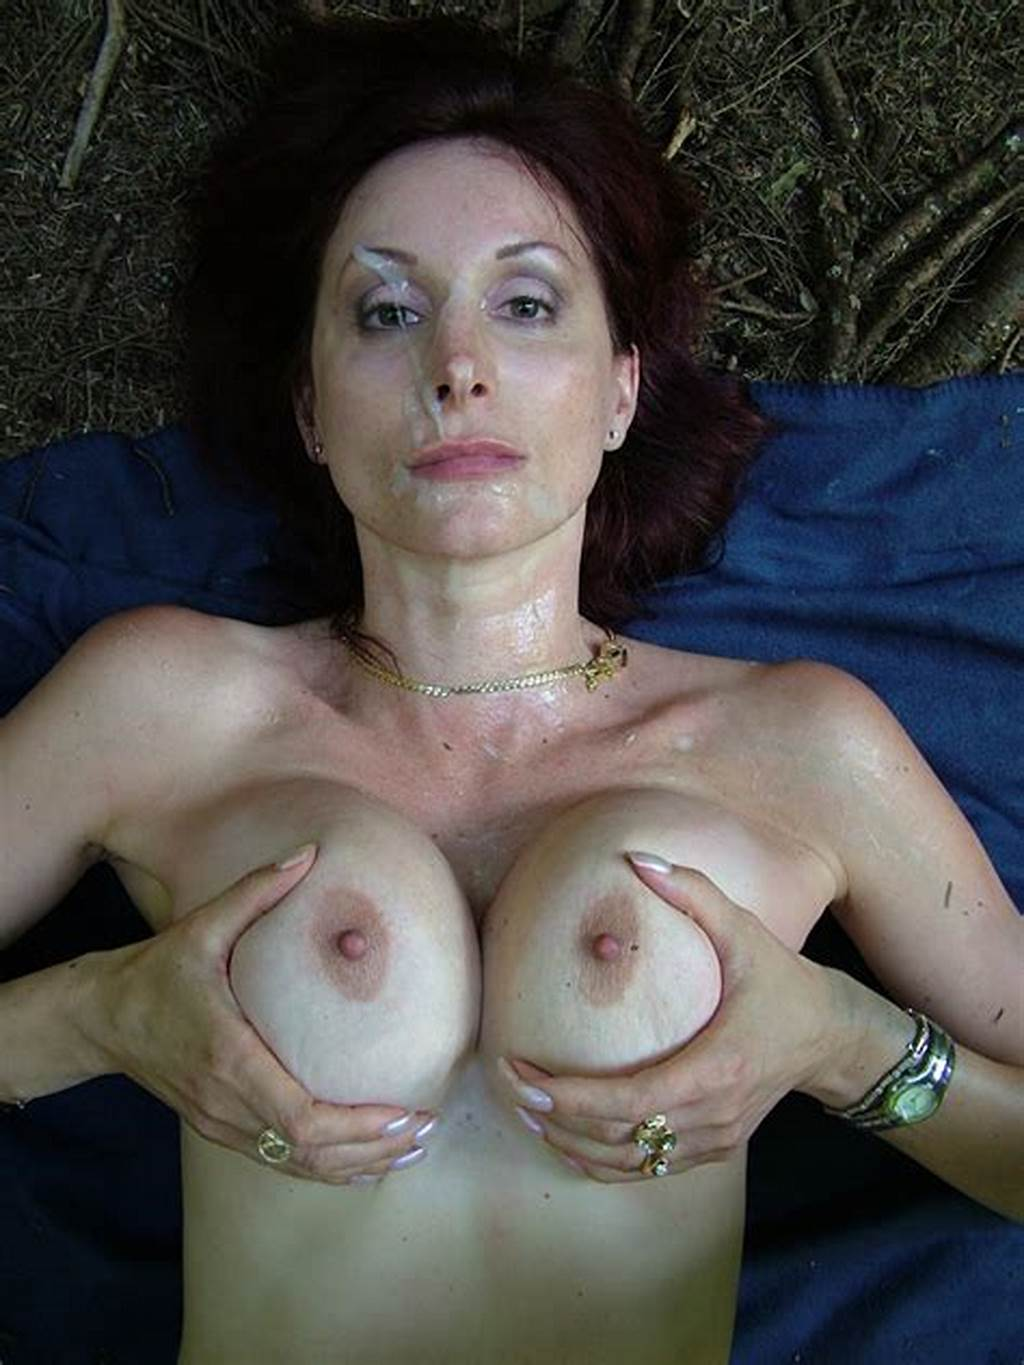 #Covered #Milf #Porn #Photo